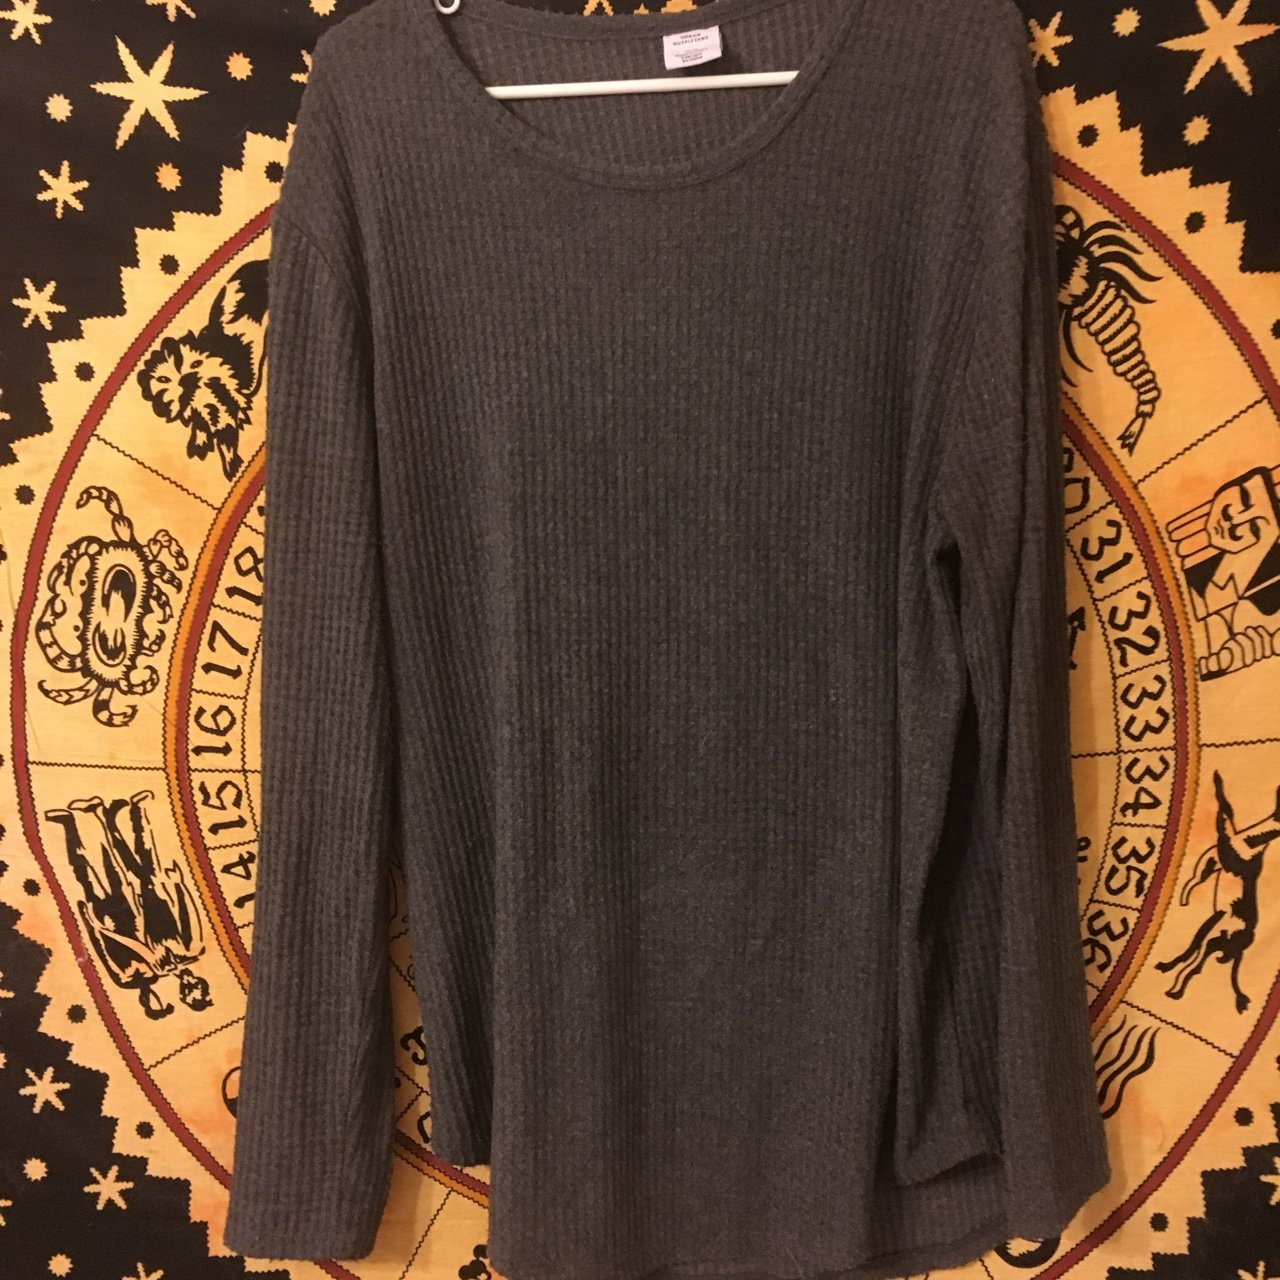 00ab0f6e7f6bf Oversized T Shirt Dress Urban Outfitters - DREAMWORKS